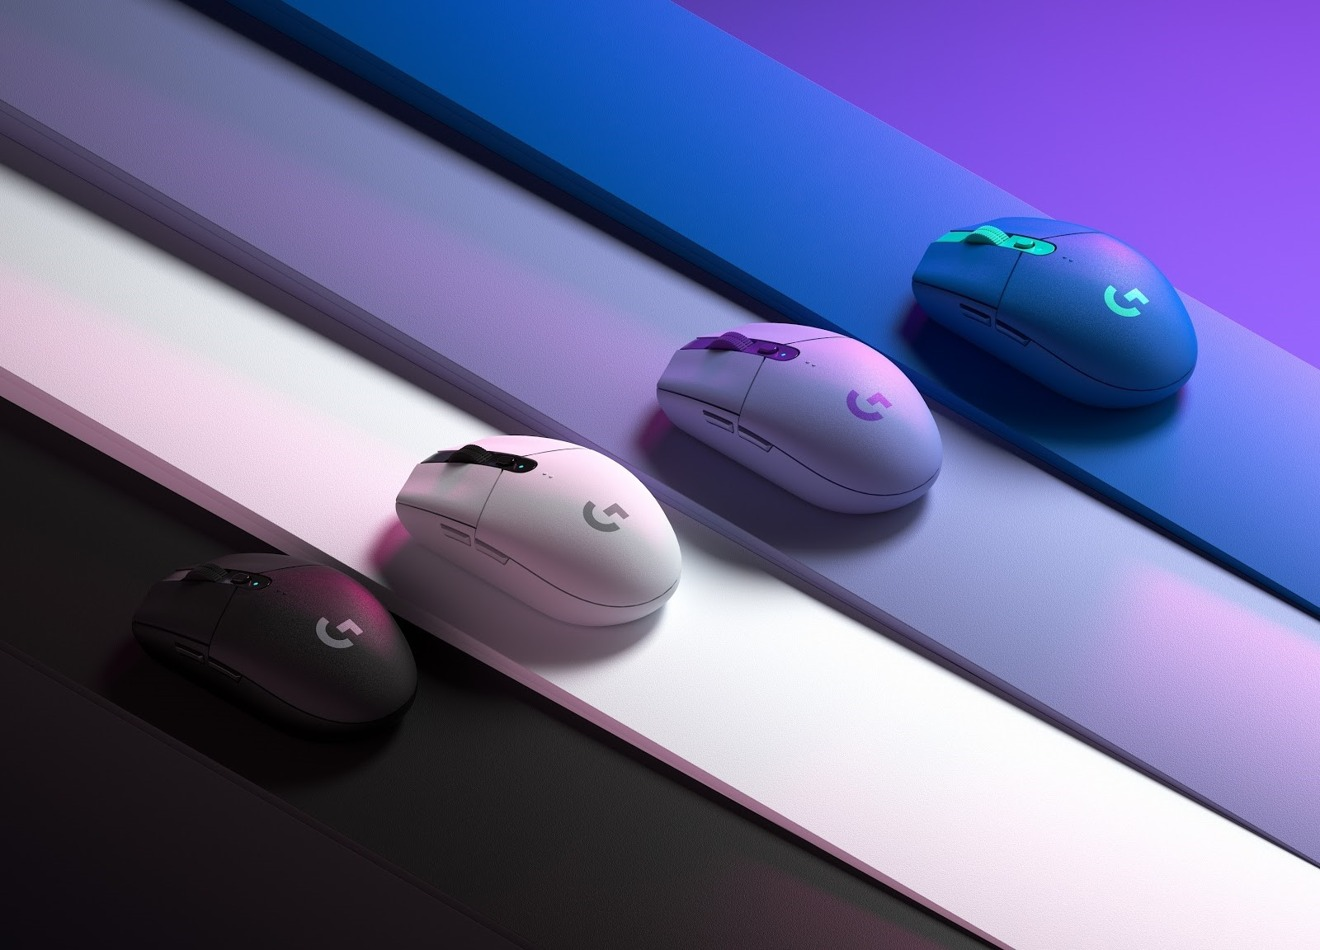 Wireless G305 gaming mouse is now available in blue and lilac alongside white and black